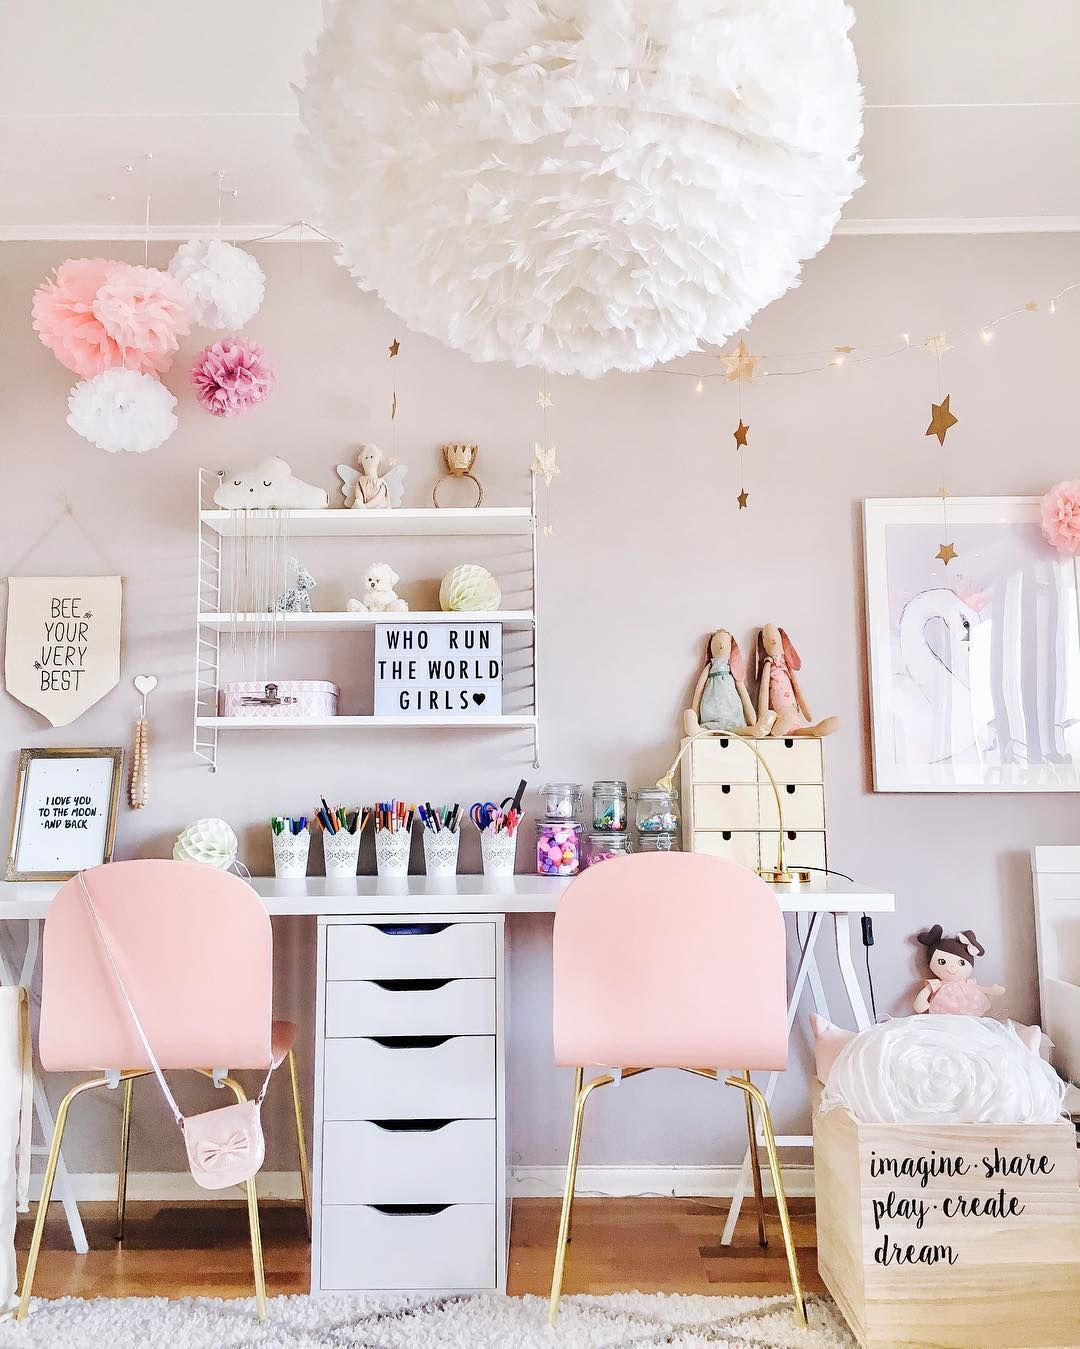 12 Perfect And Calming Bedroom Ideas For Women: Pin On Pink Inspirations